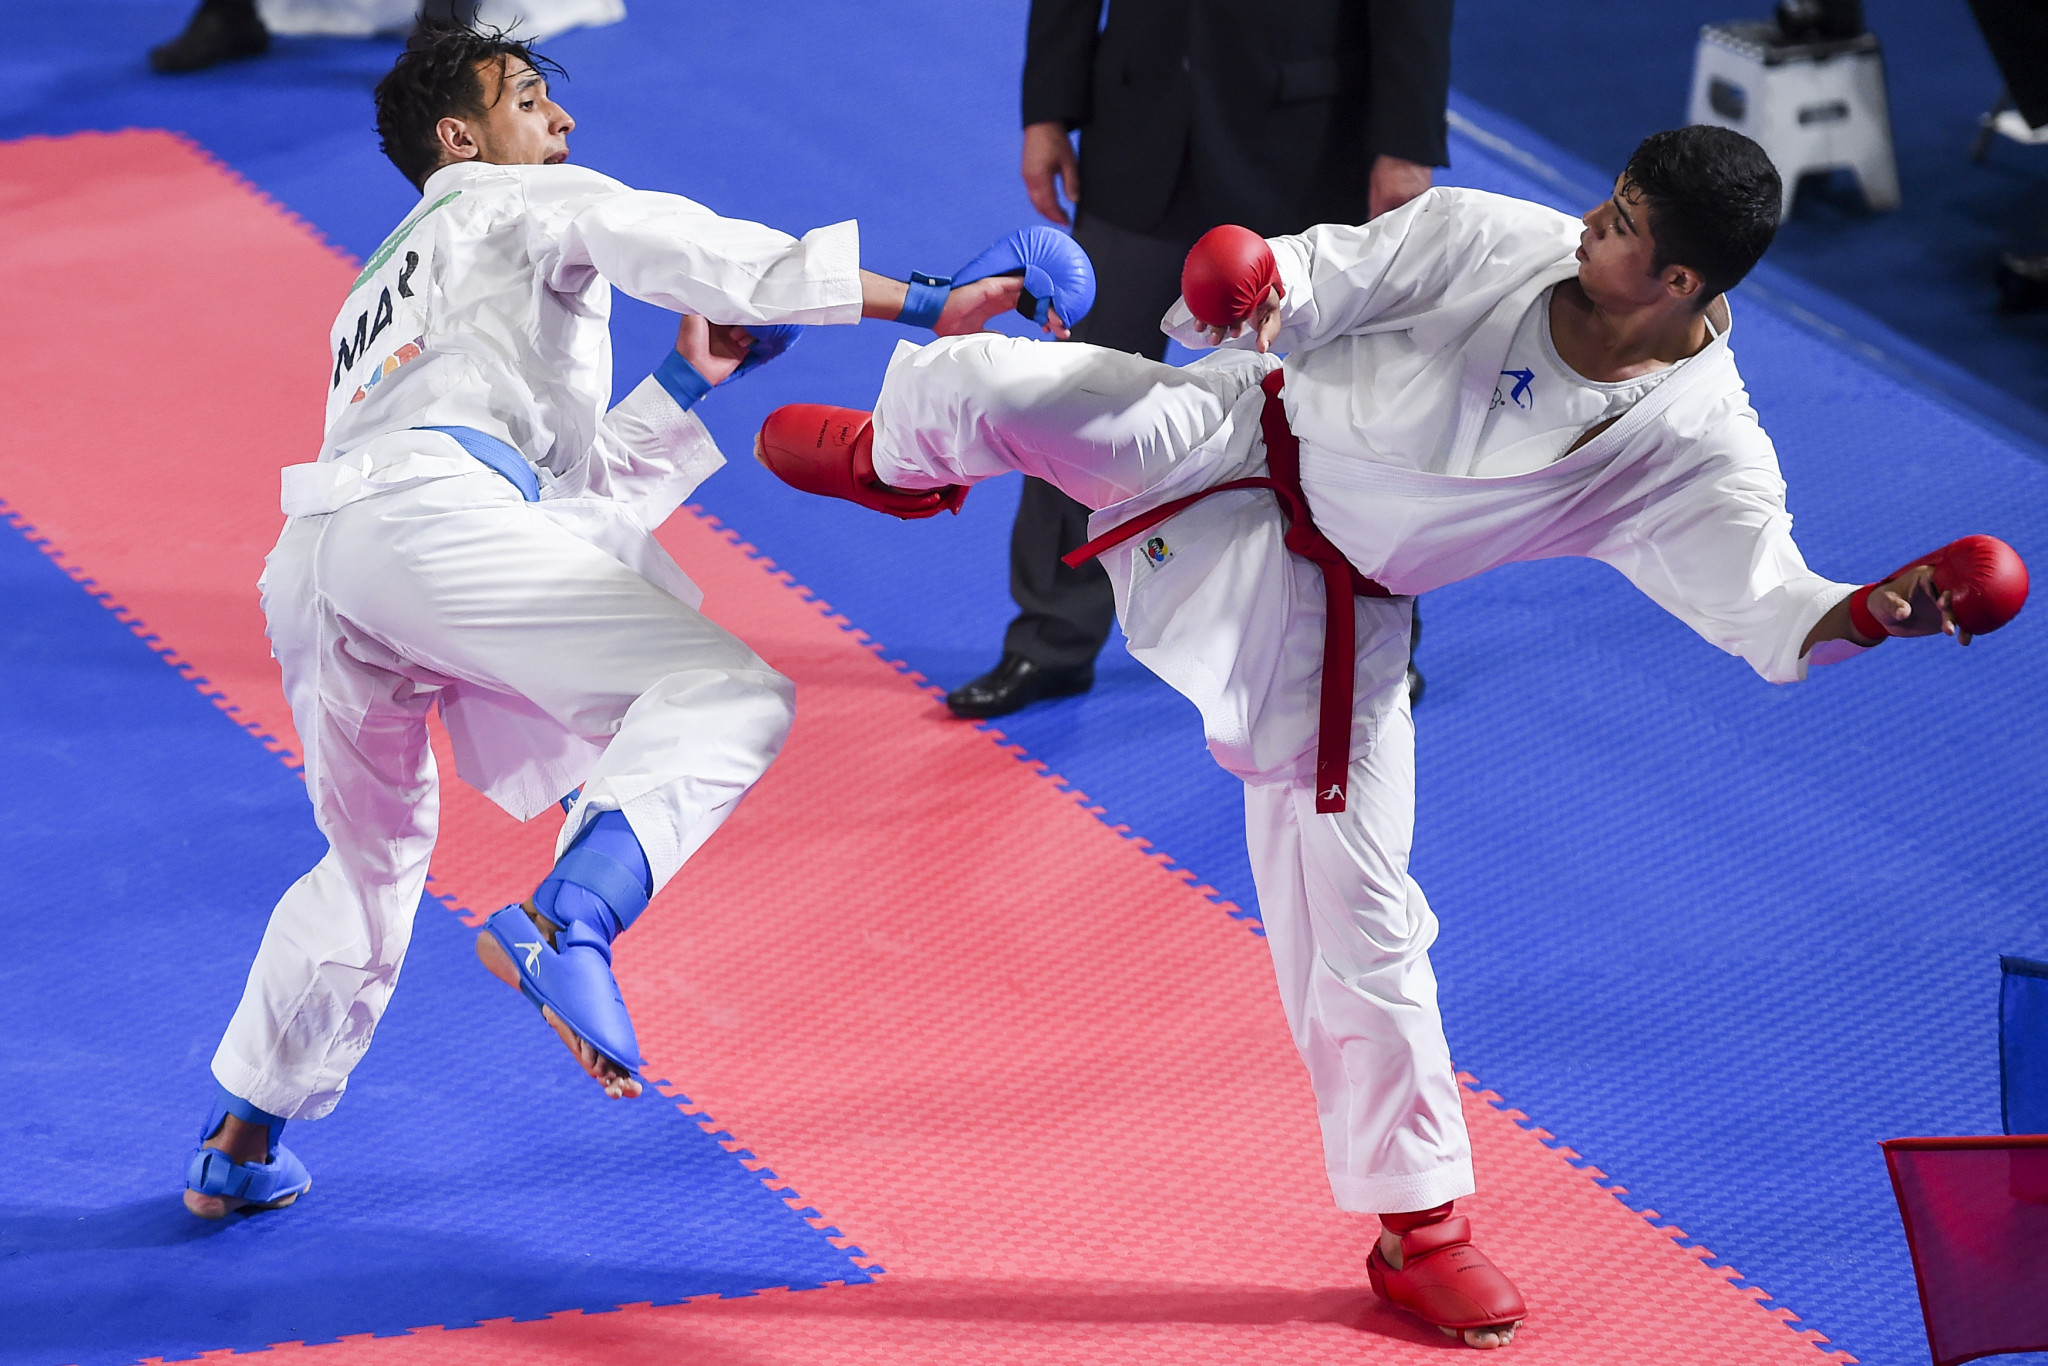 Karate made its Youth Olympic Games debut at Buenos Aires 2018 ©Getty Images